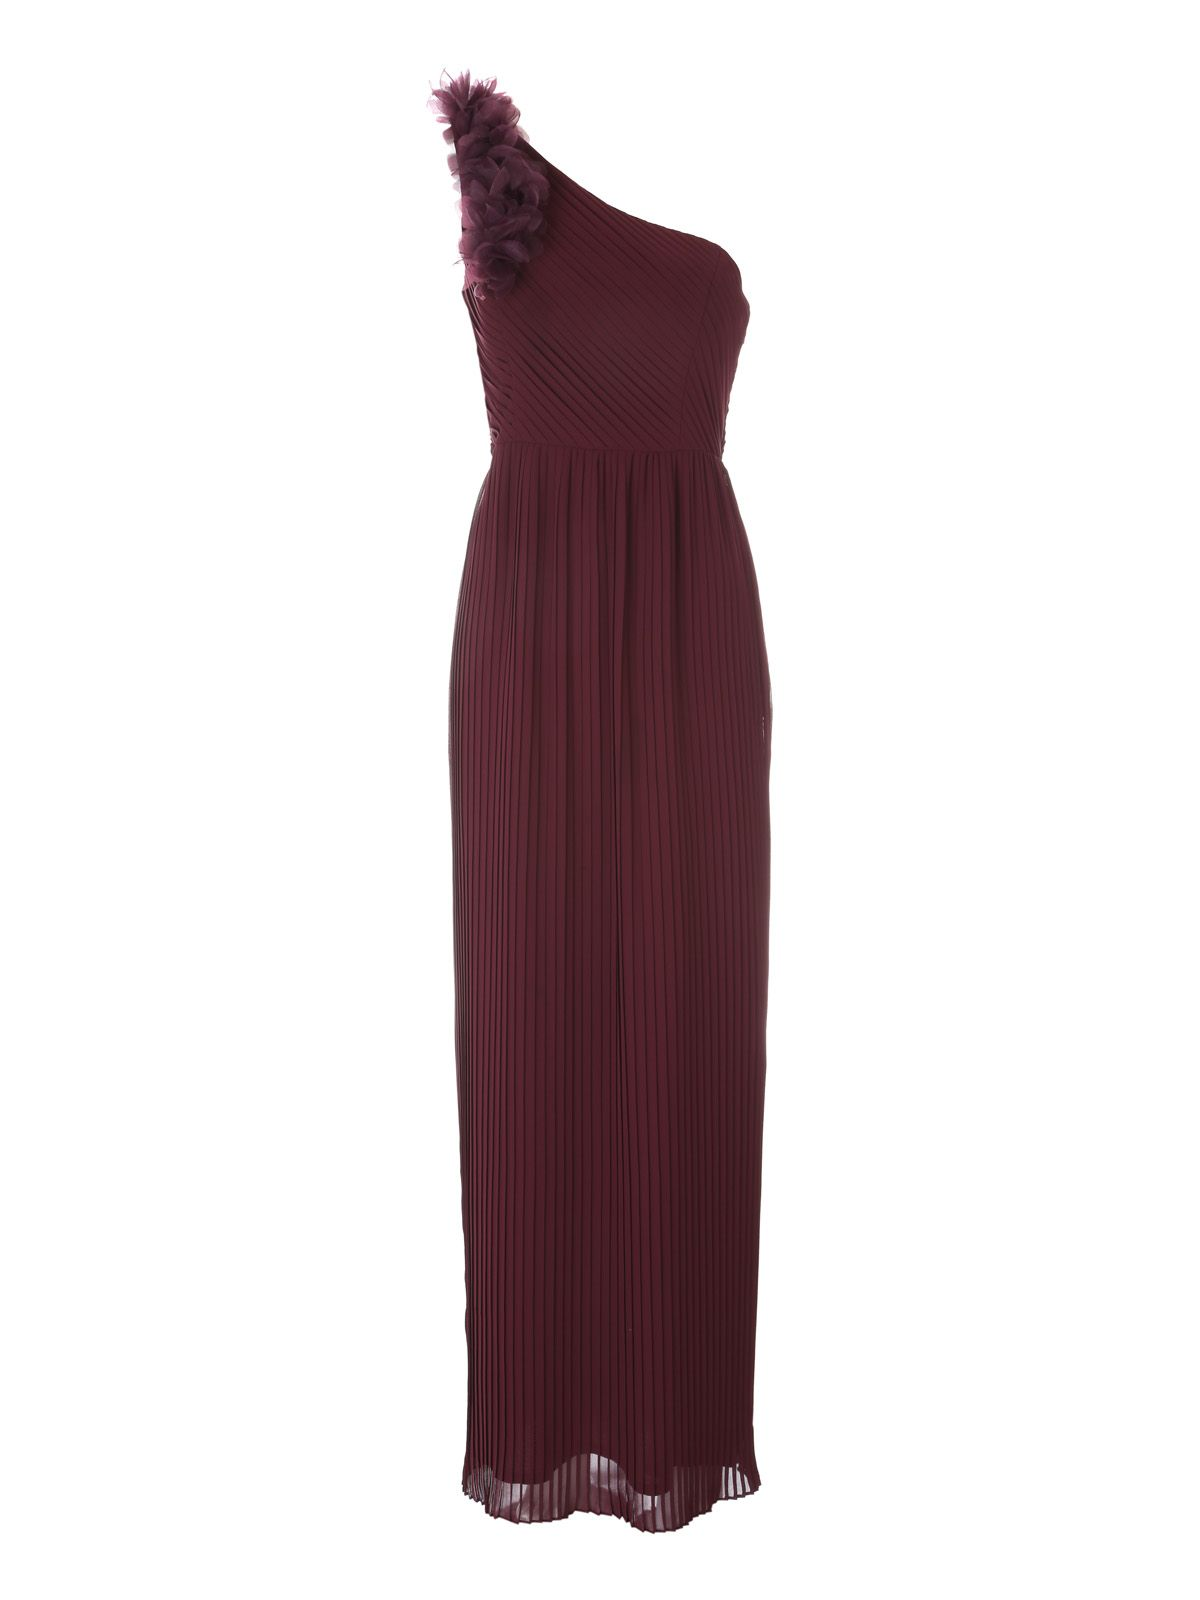 Jane Norman One Shoulder Flower Maxi Dress, Plum